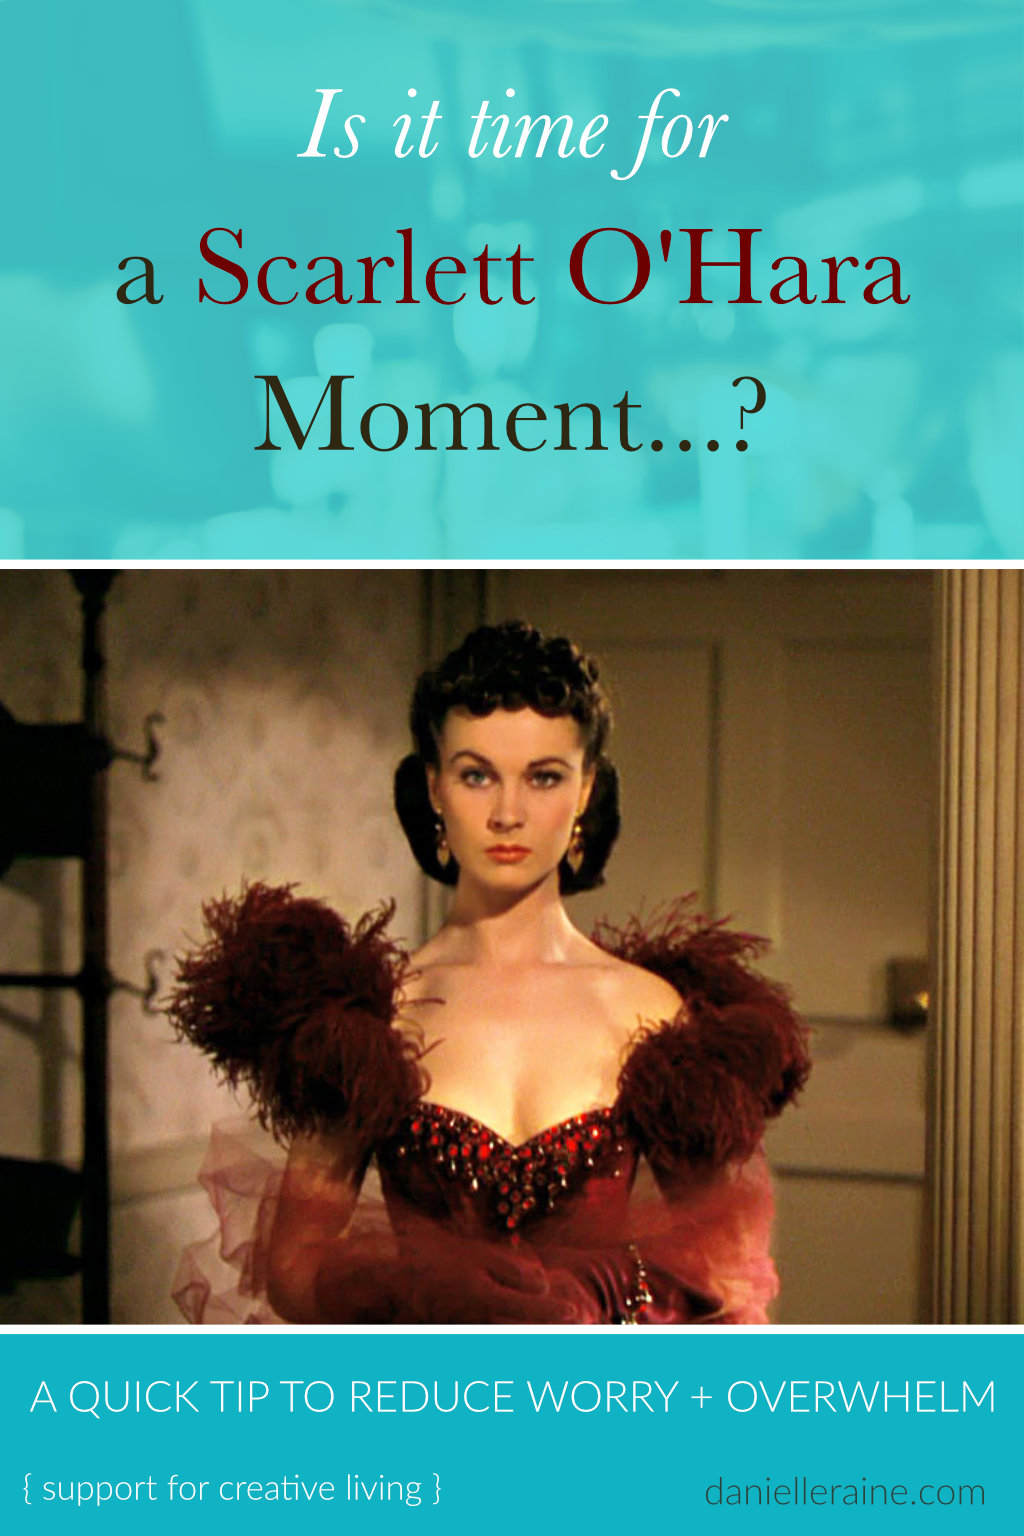 scarlett o hara moment reduce overwhelm fear worry